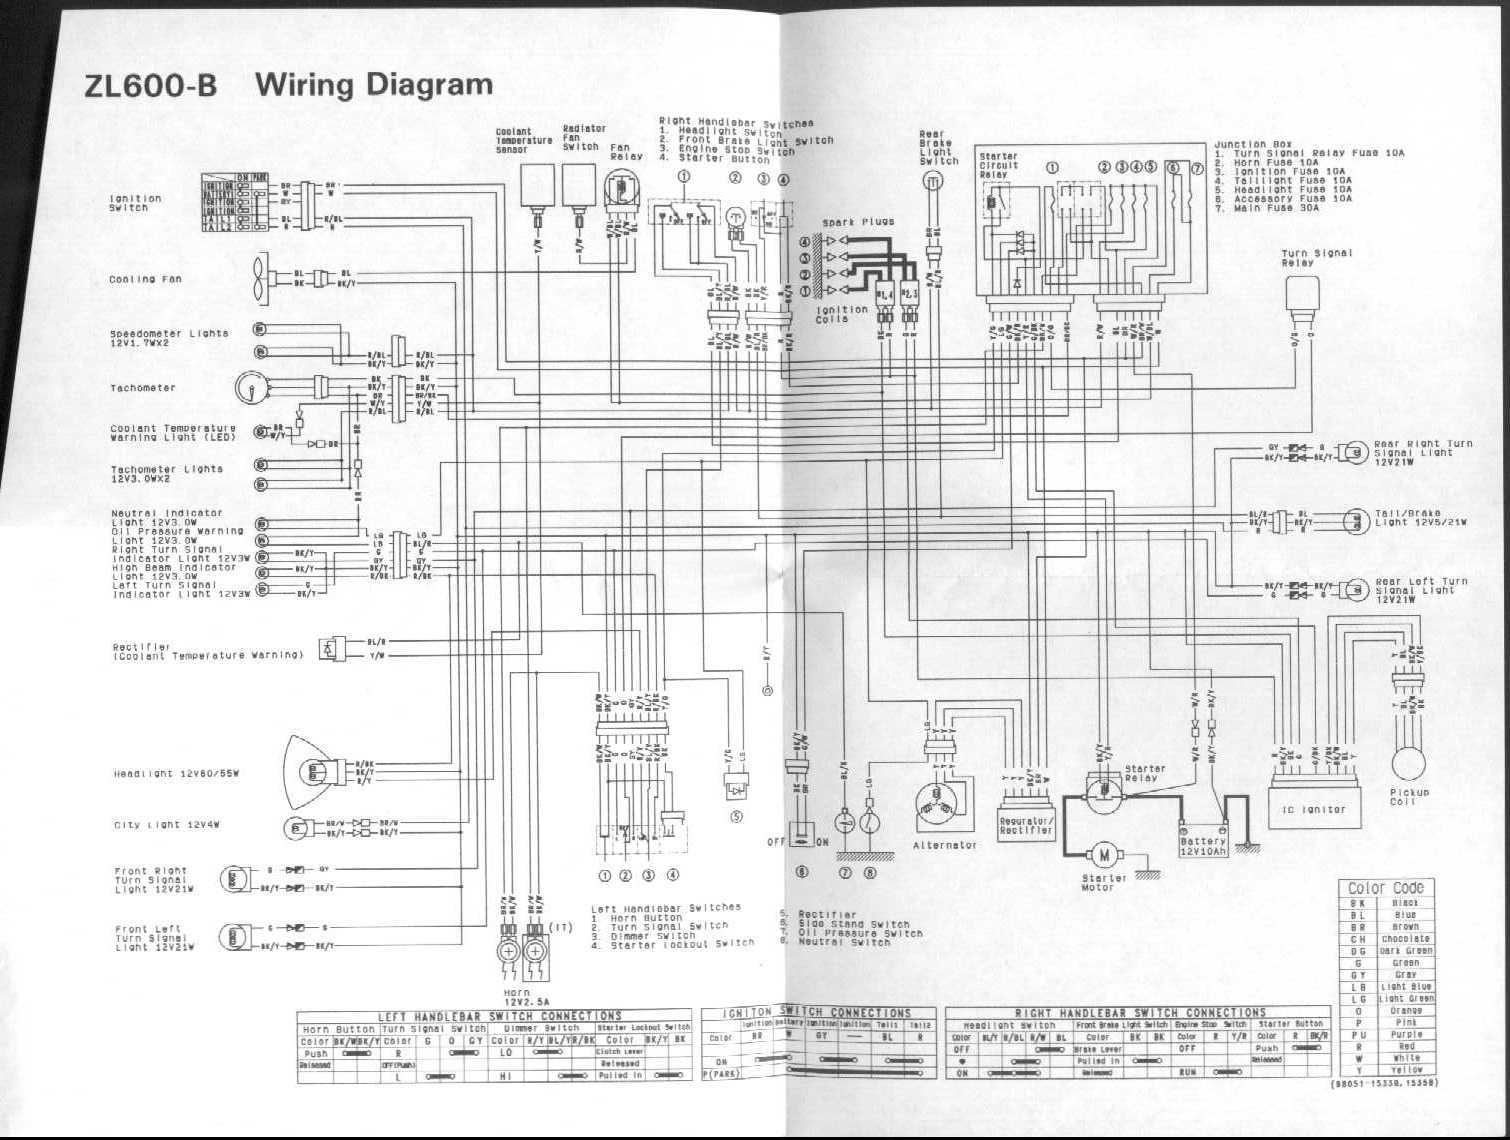 Ducati 999s Wiring Diagram Free For You 93 Ford Voltage Regulator Suzuki Motorcycle Marauder 800 Diagrams 999 1996 F150 1993 Ignition